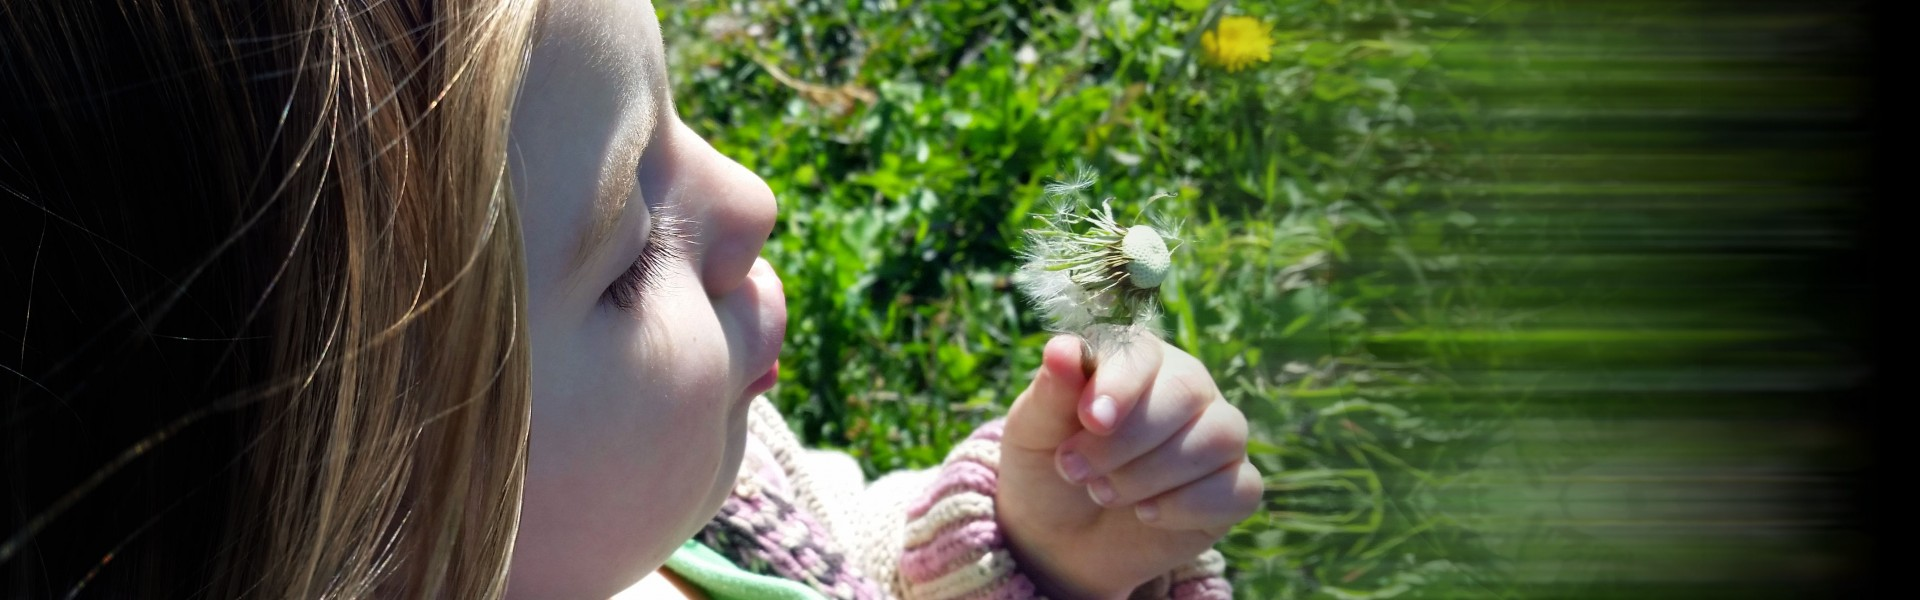 House Cleaning Services in Boulder CO   Dandelion Cleaning